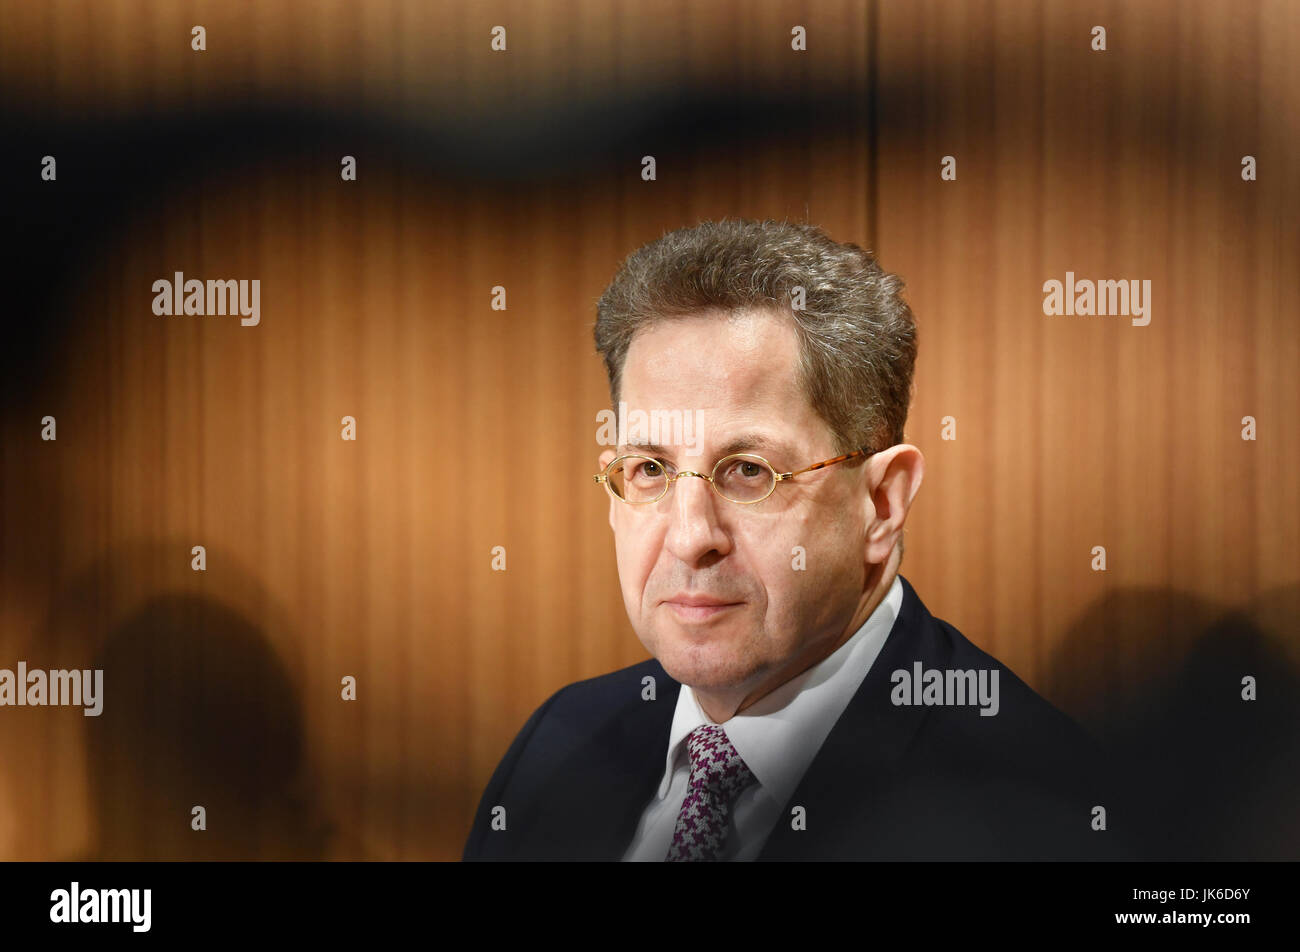 Hans-Georg Maaßen, President of the Federal Office for the Protection of the Constitution, answers questions - Stock Image